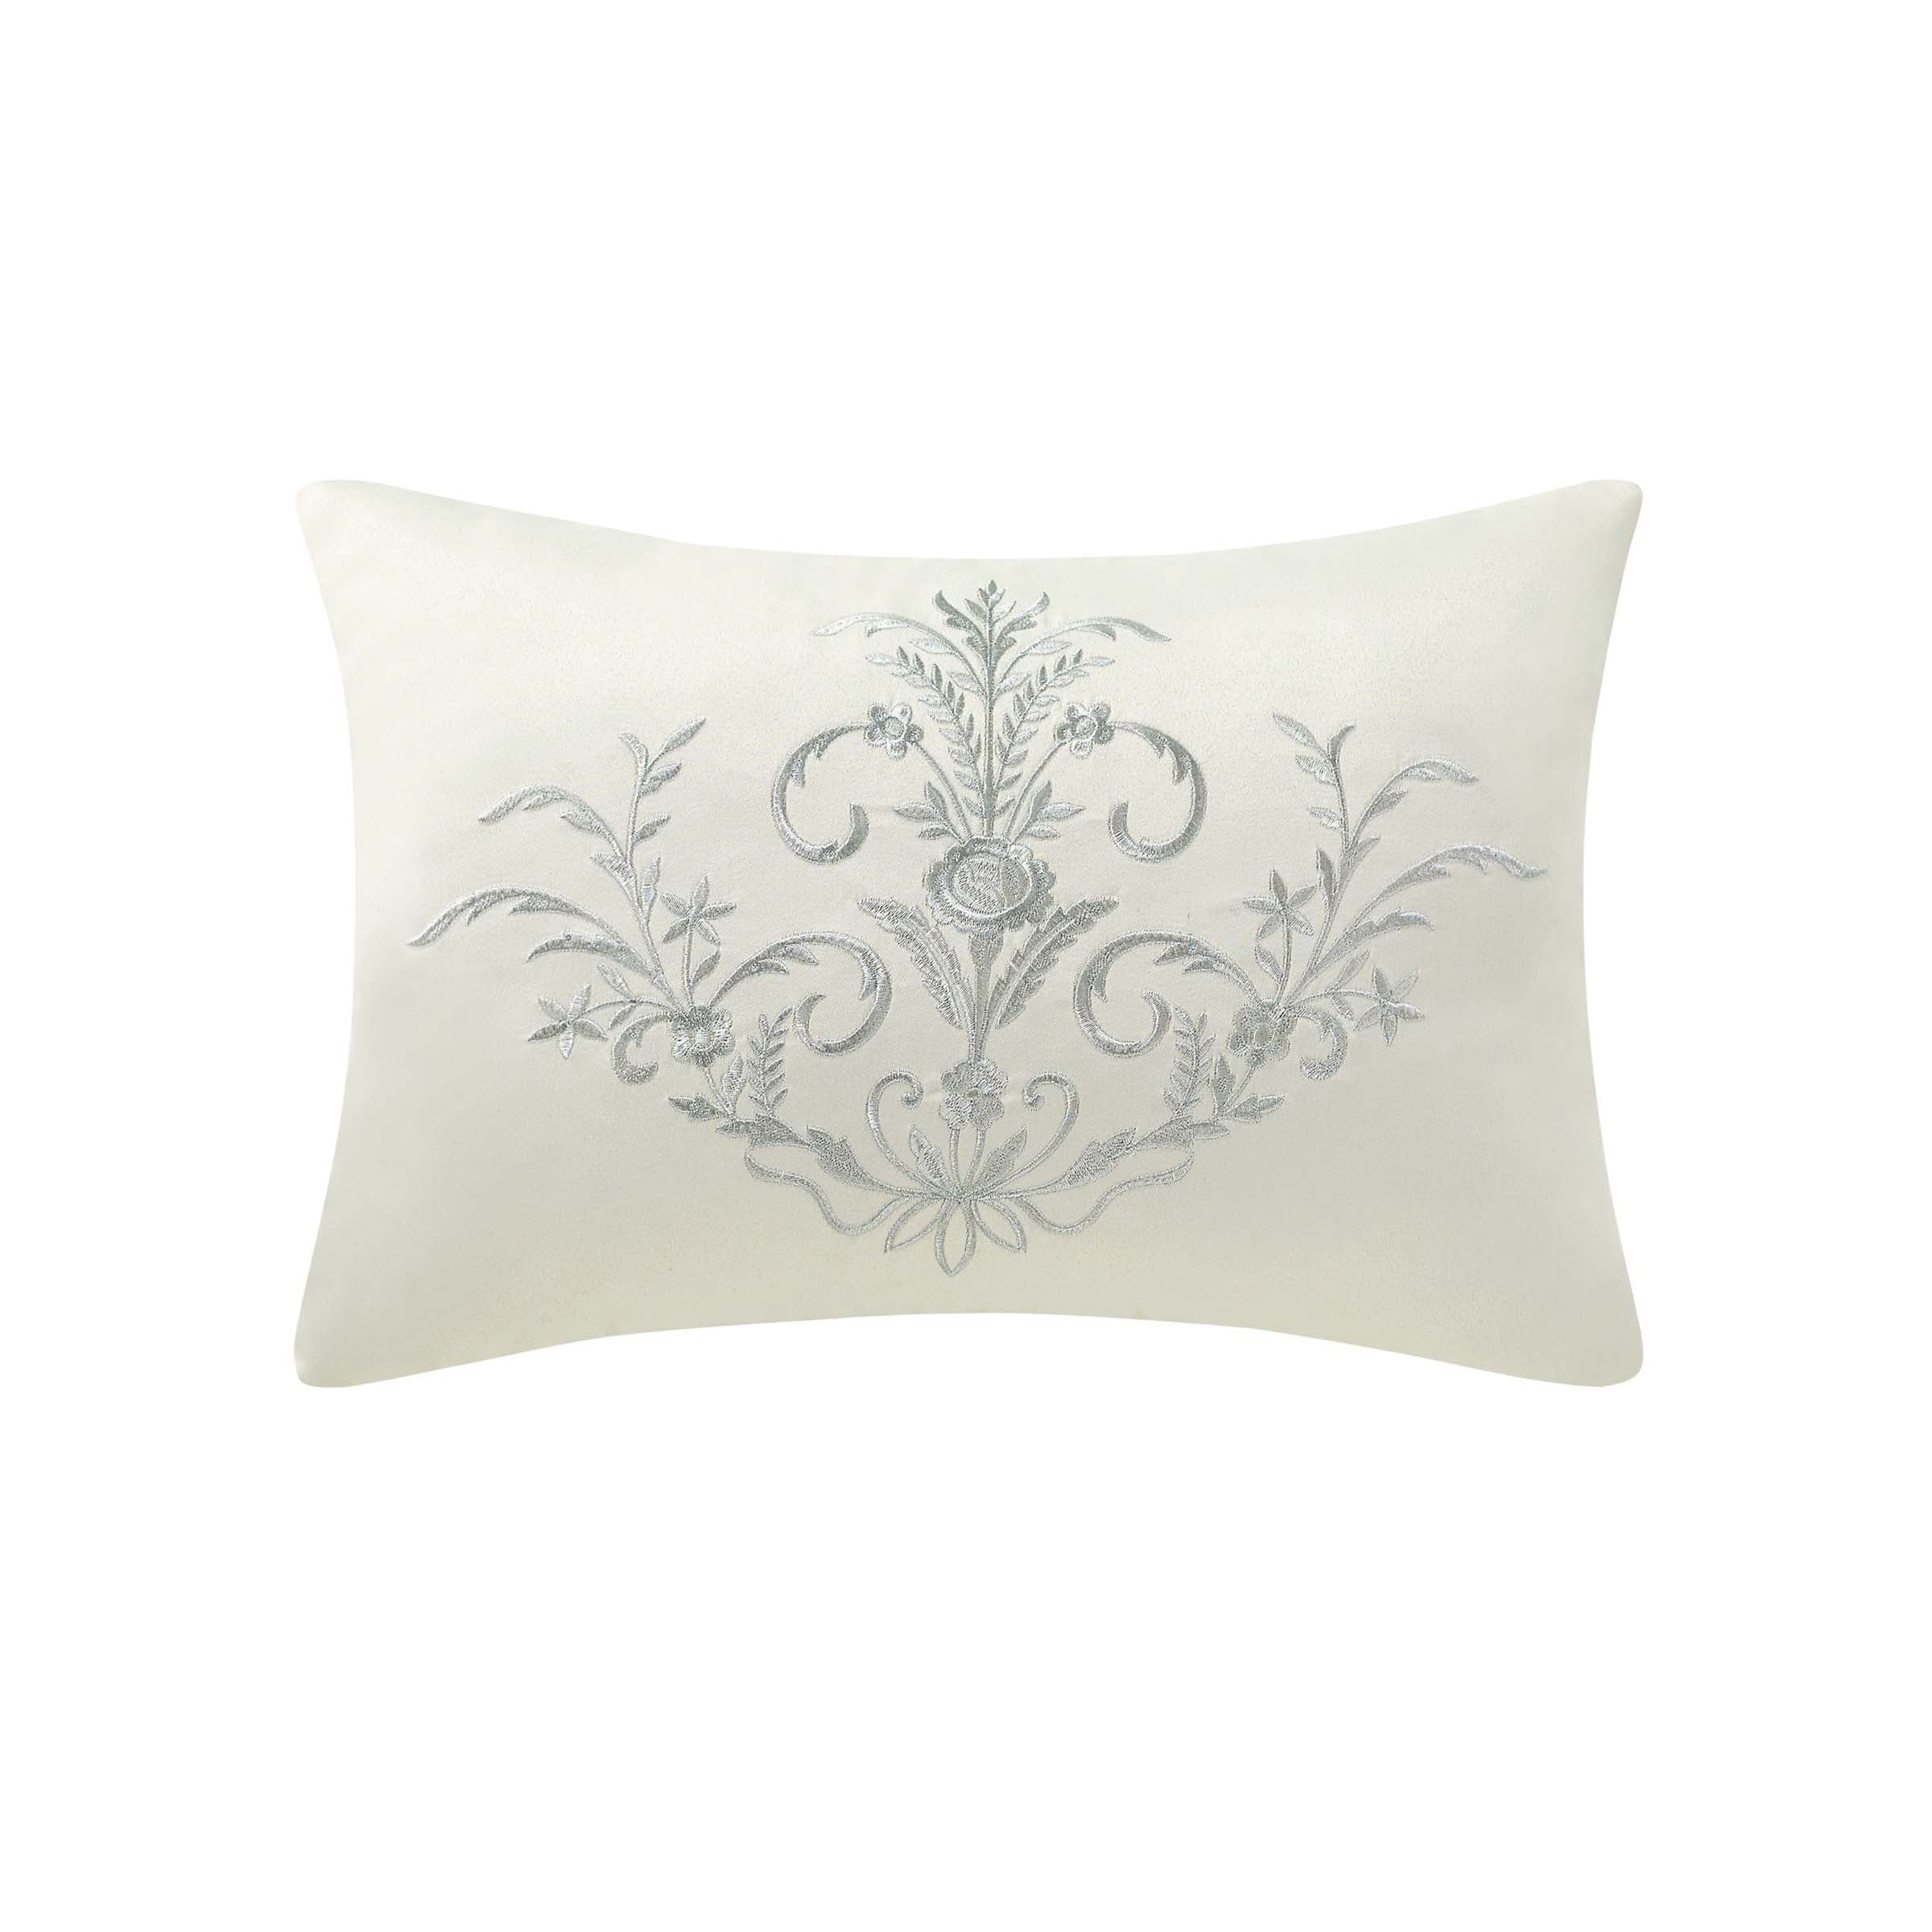 "Fairlane Silver Decorative Throw Pillow 18"" x 12"" Throw Pillows By Waterford"